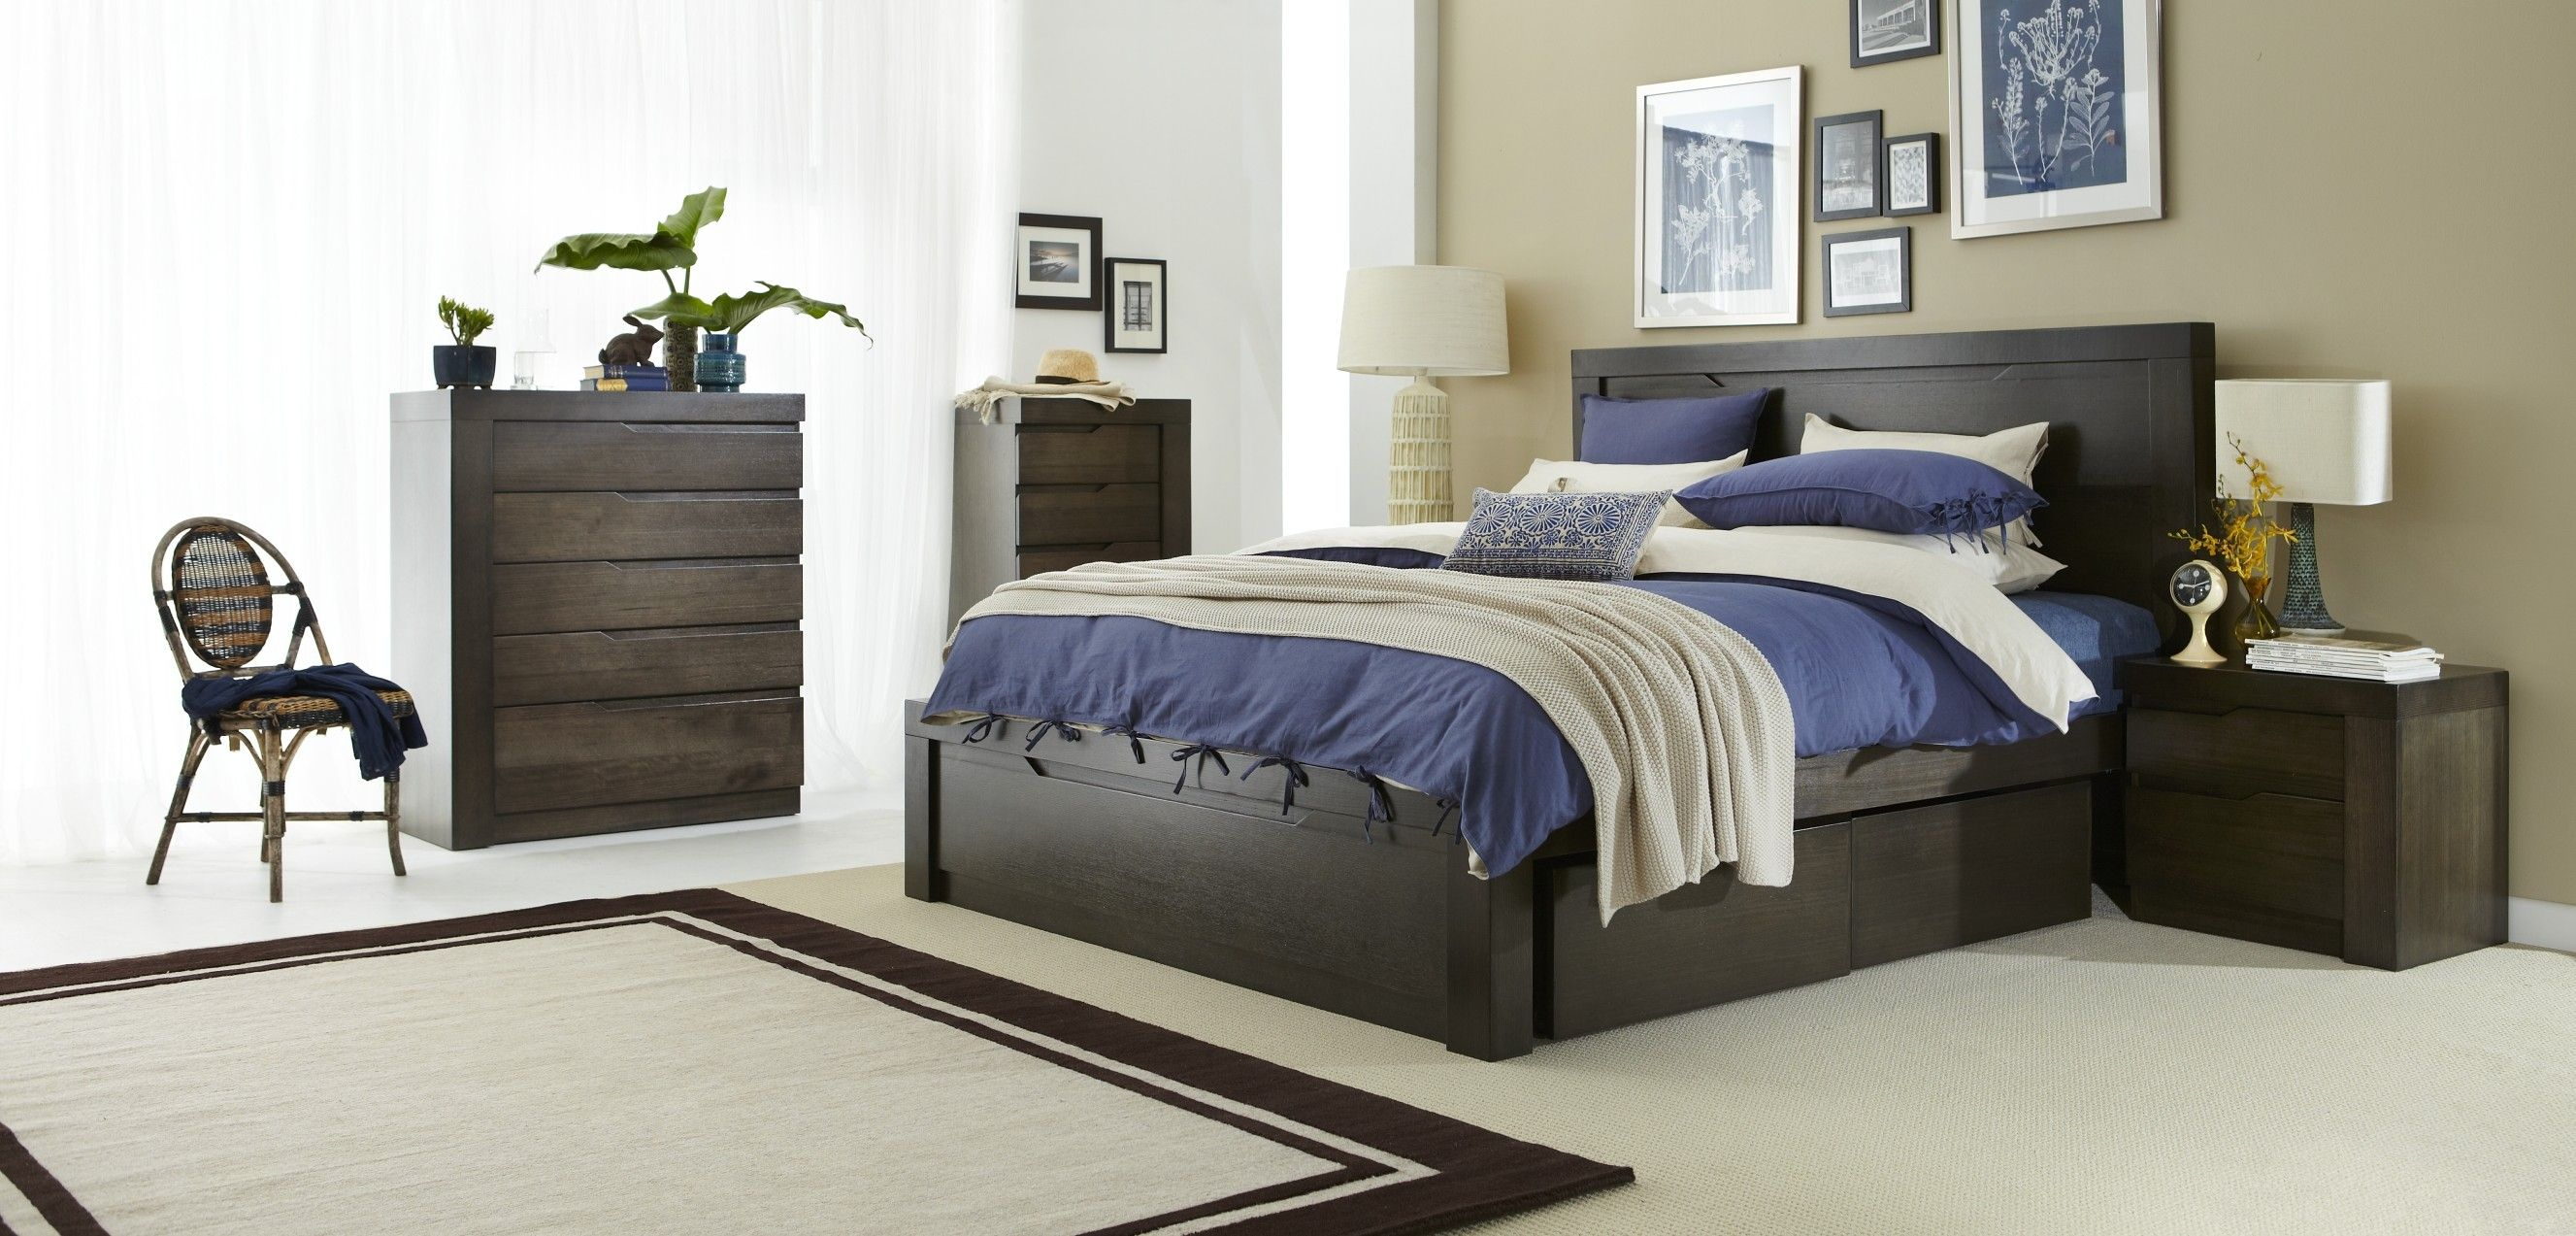 Solander Bedroom Furniture The Contemporary Lines Of The Solander Are Accentuated By Its Beautiful Tasma Bedroom Furniture Furniture Bedroom Furniture Suites